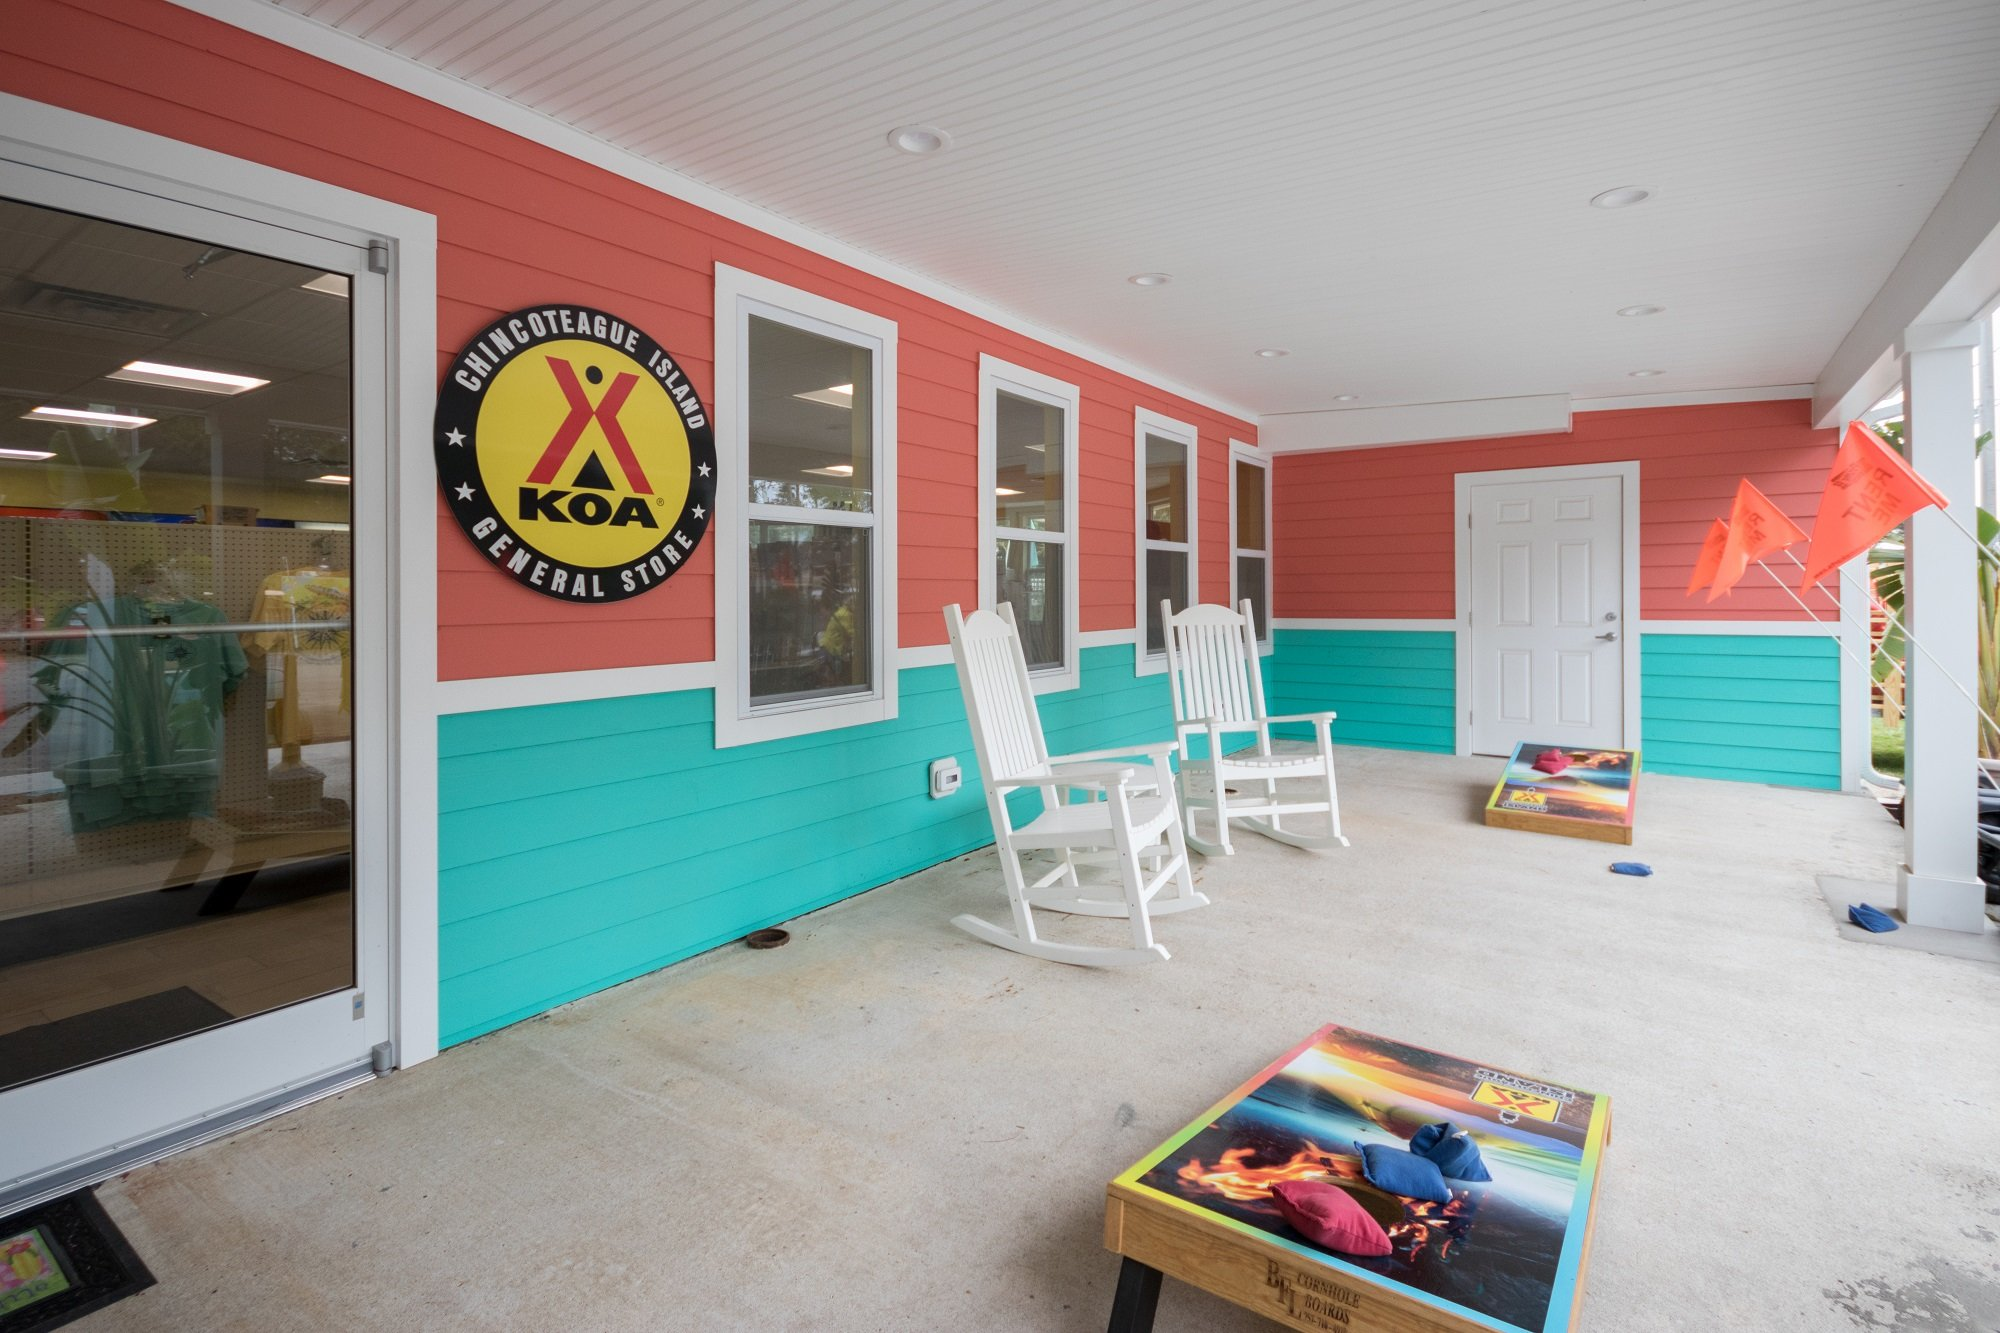 Chincoteague Island KOA General Store with bag toss game in front of bright coral and teal building